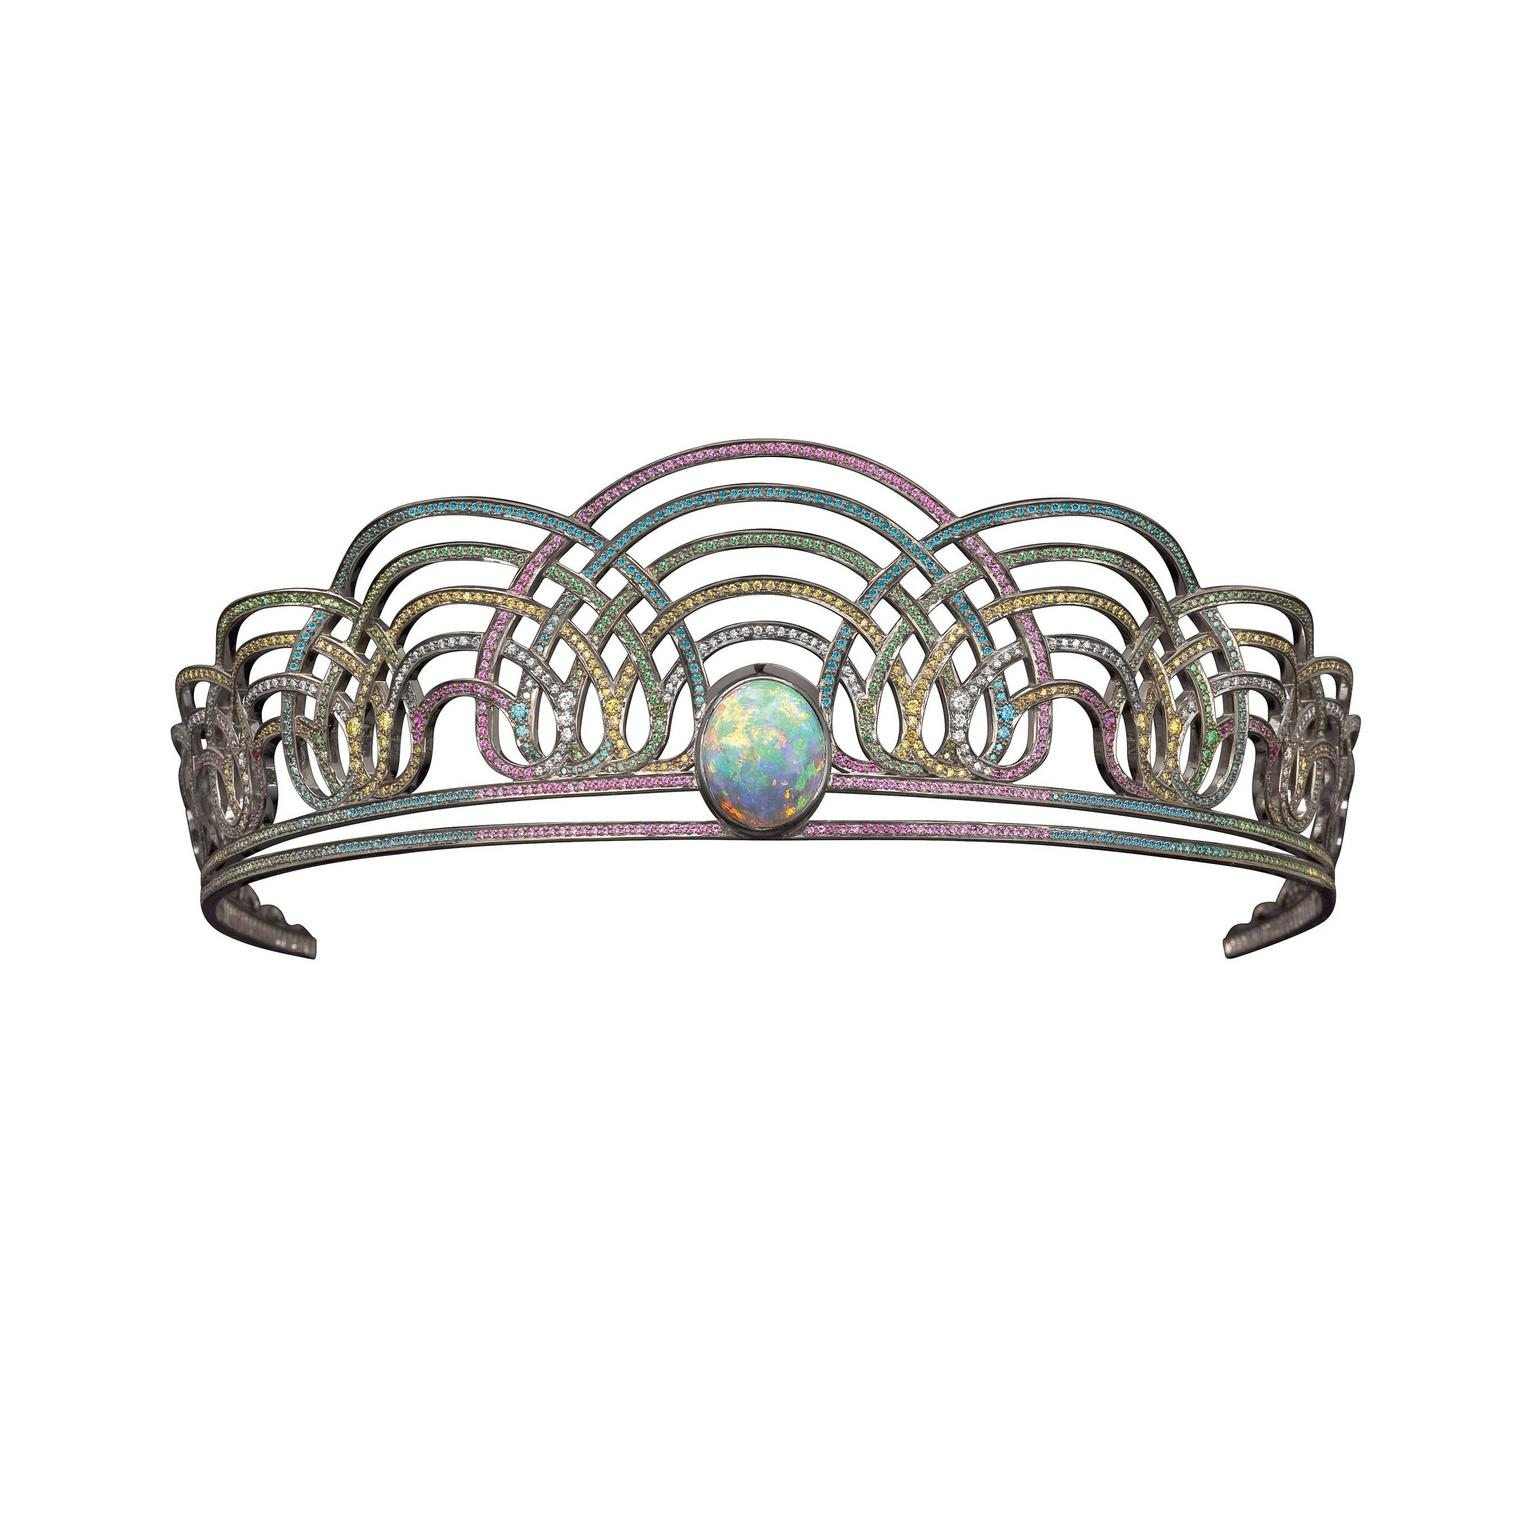 Rainbow tiara by Solange Azagury-Partridge